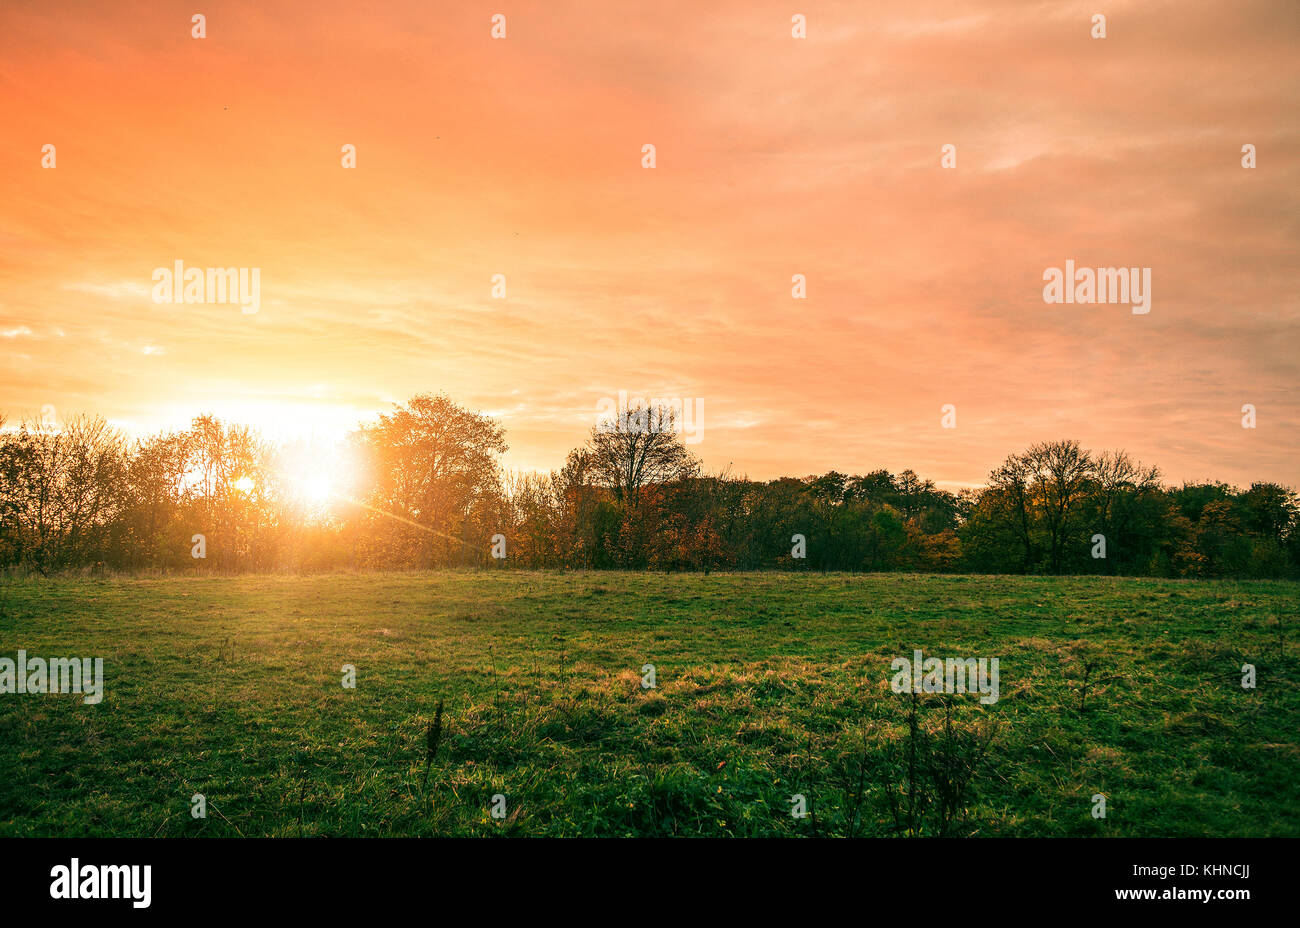 Rural landscape with a beautiful countryside sunset in red and orange colors with a green field in the front - Stock Image